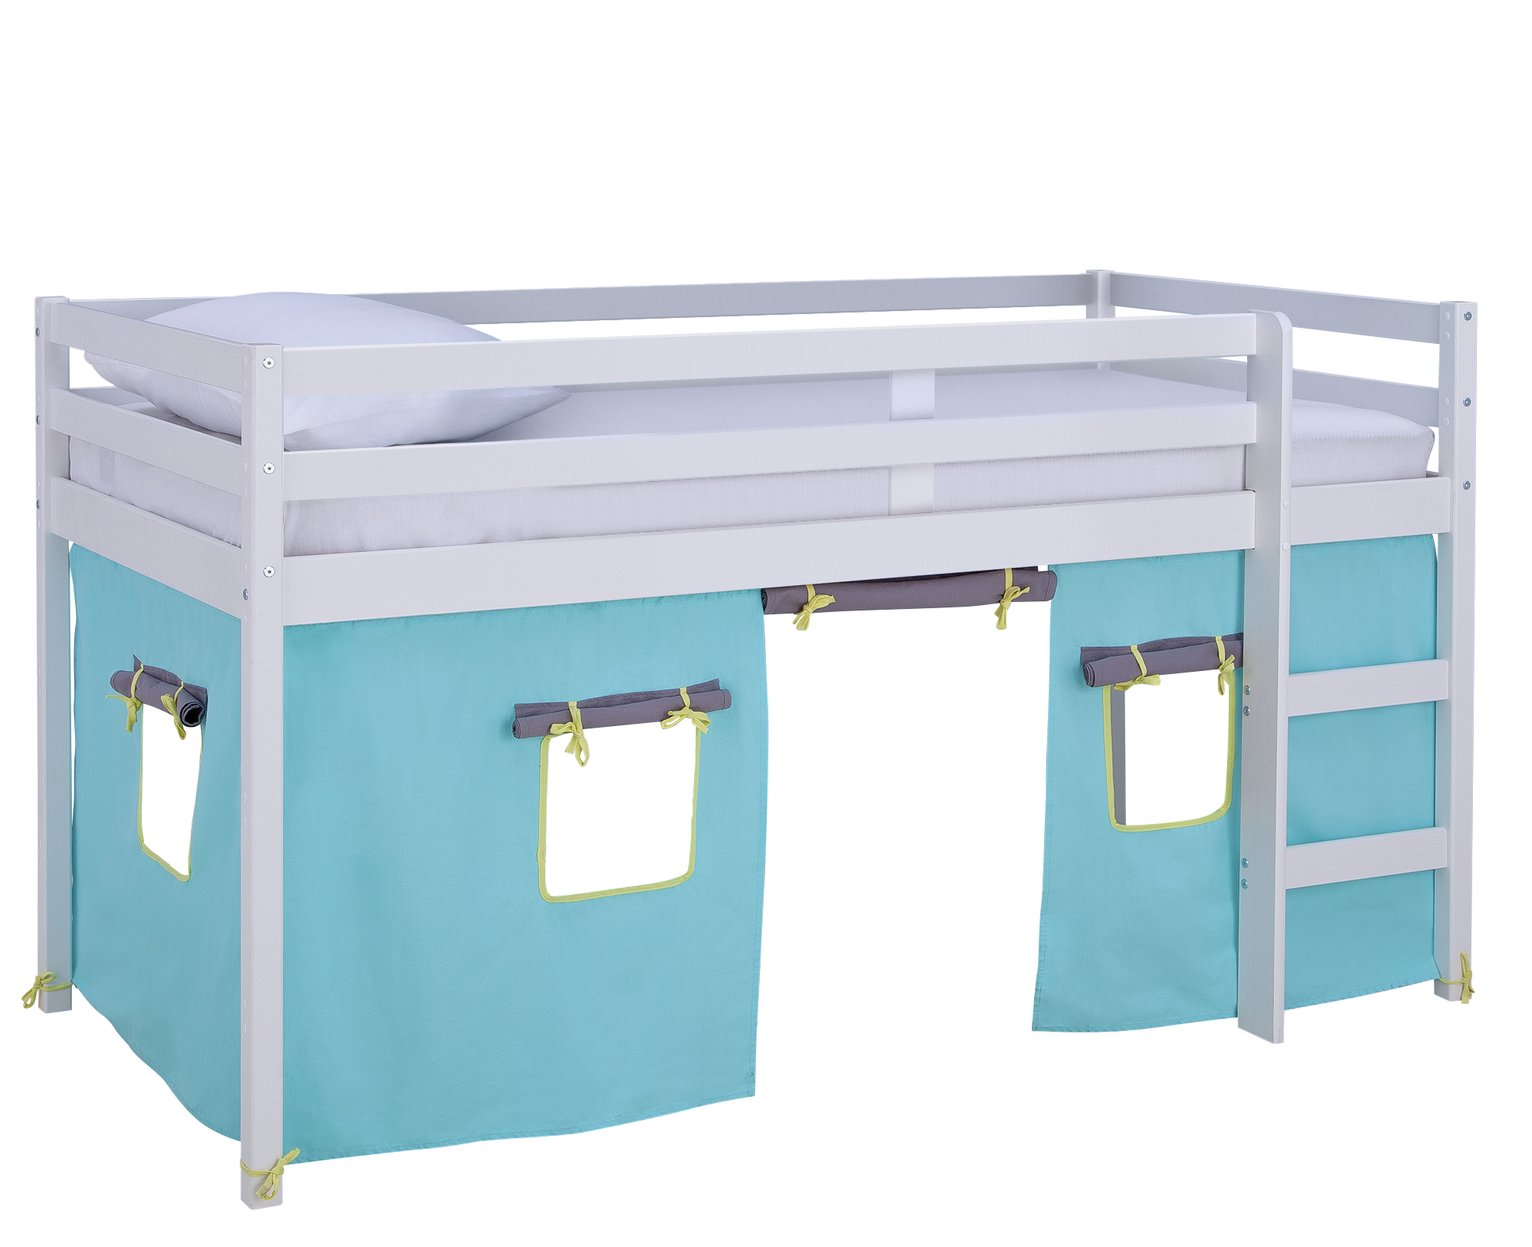 Argos Home Kaycie White Midsleeper, Blue Tent &Kids Mattress